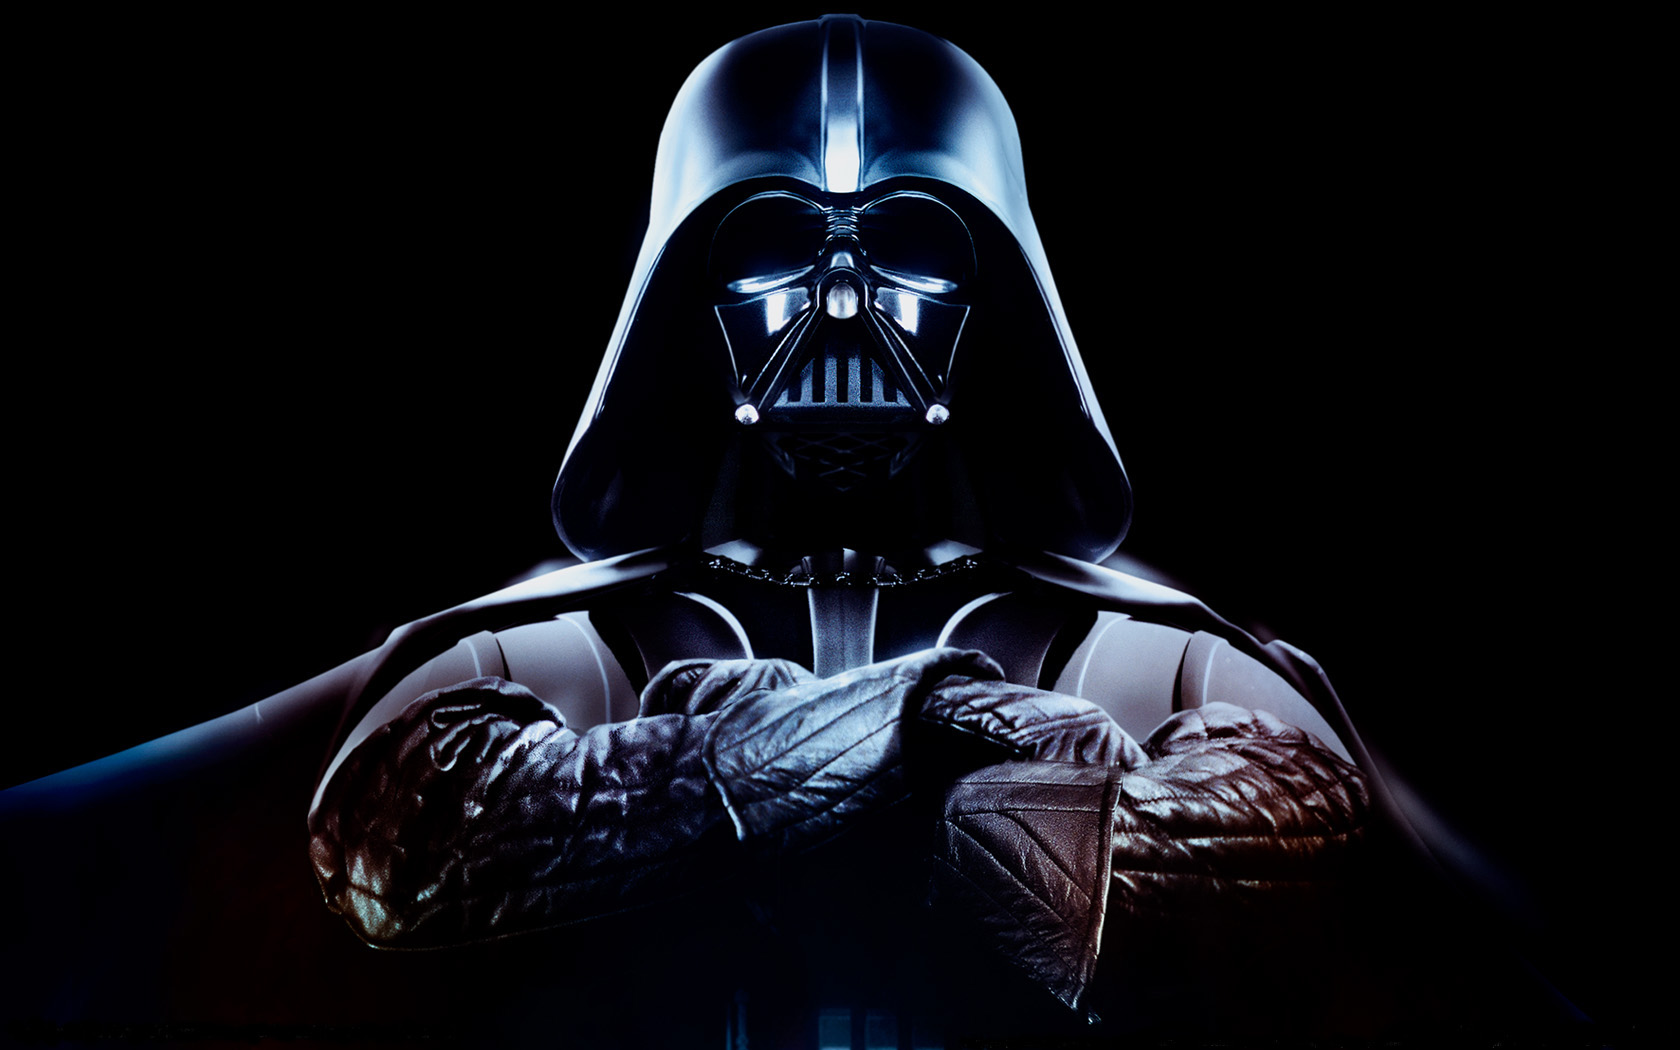 Darth Vader Images Reggie S Take Com